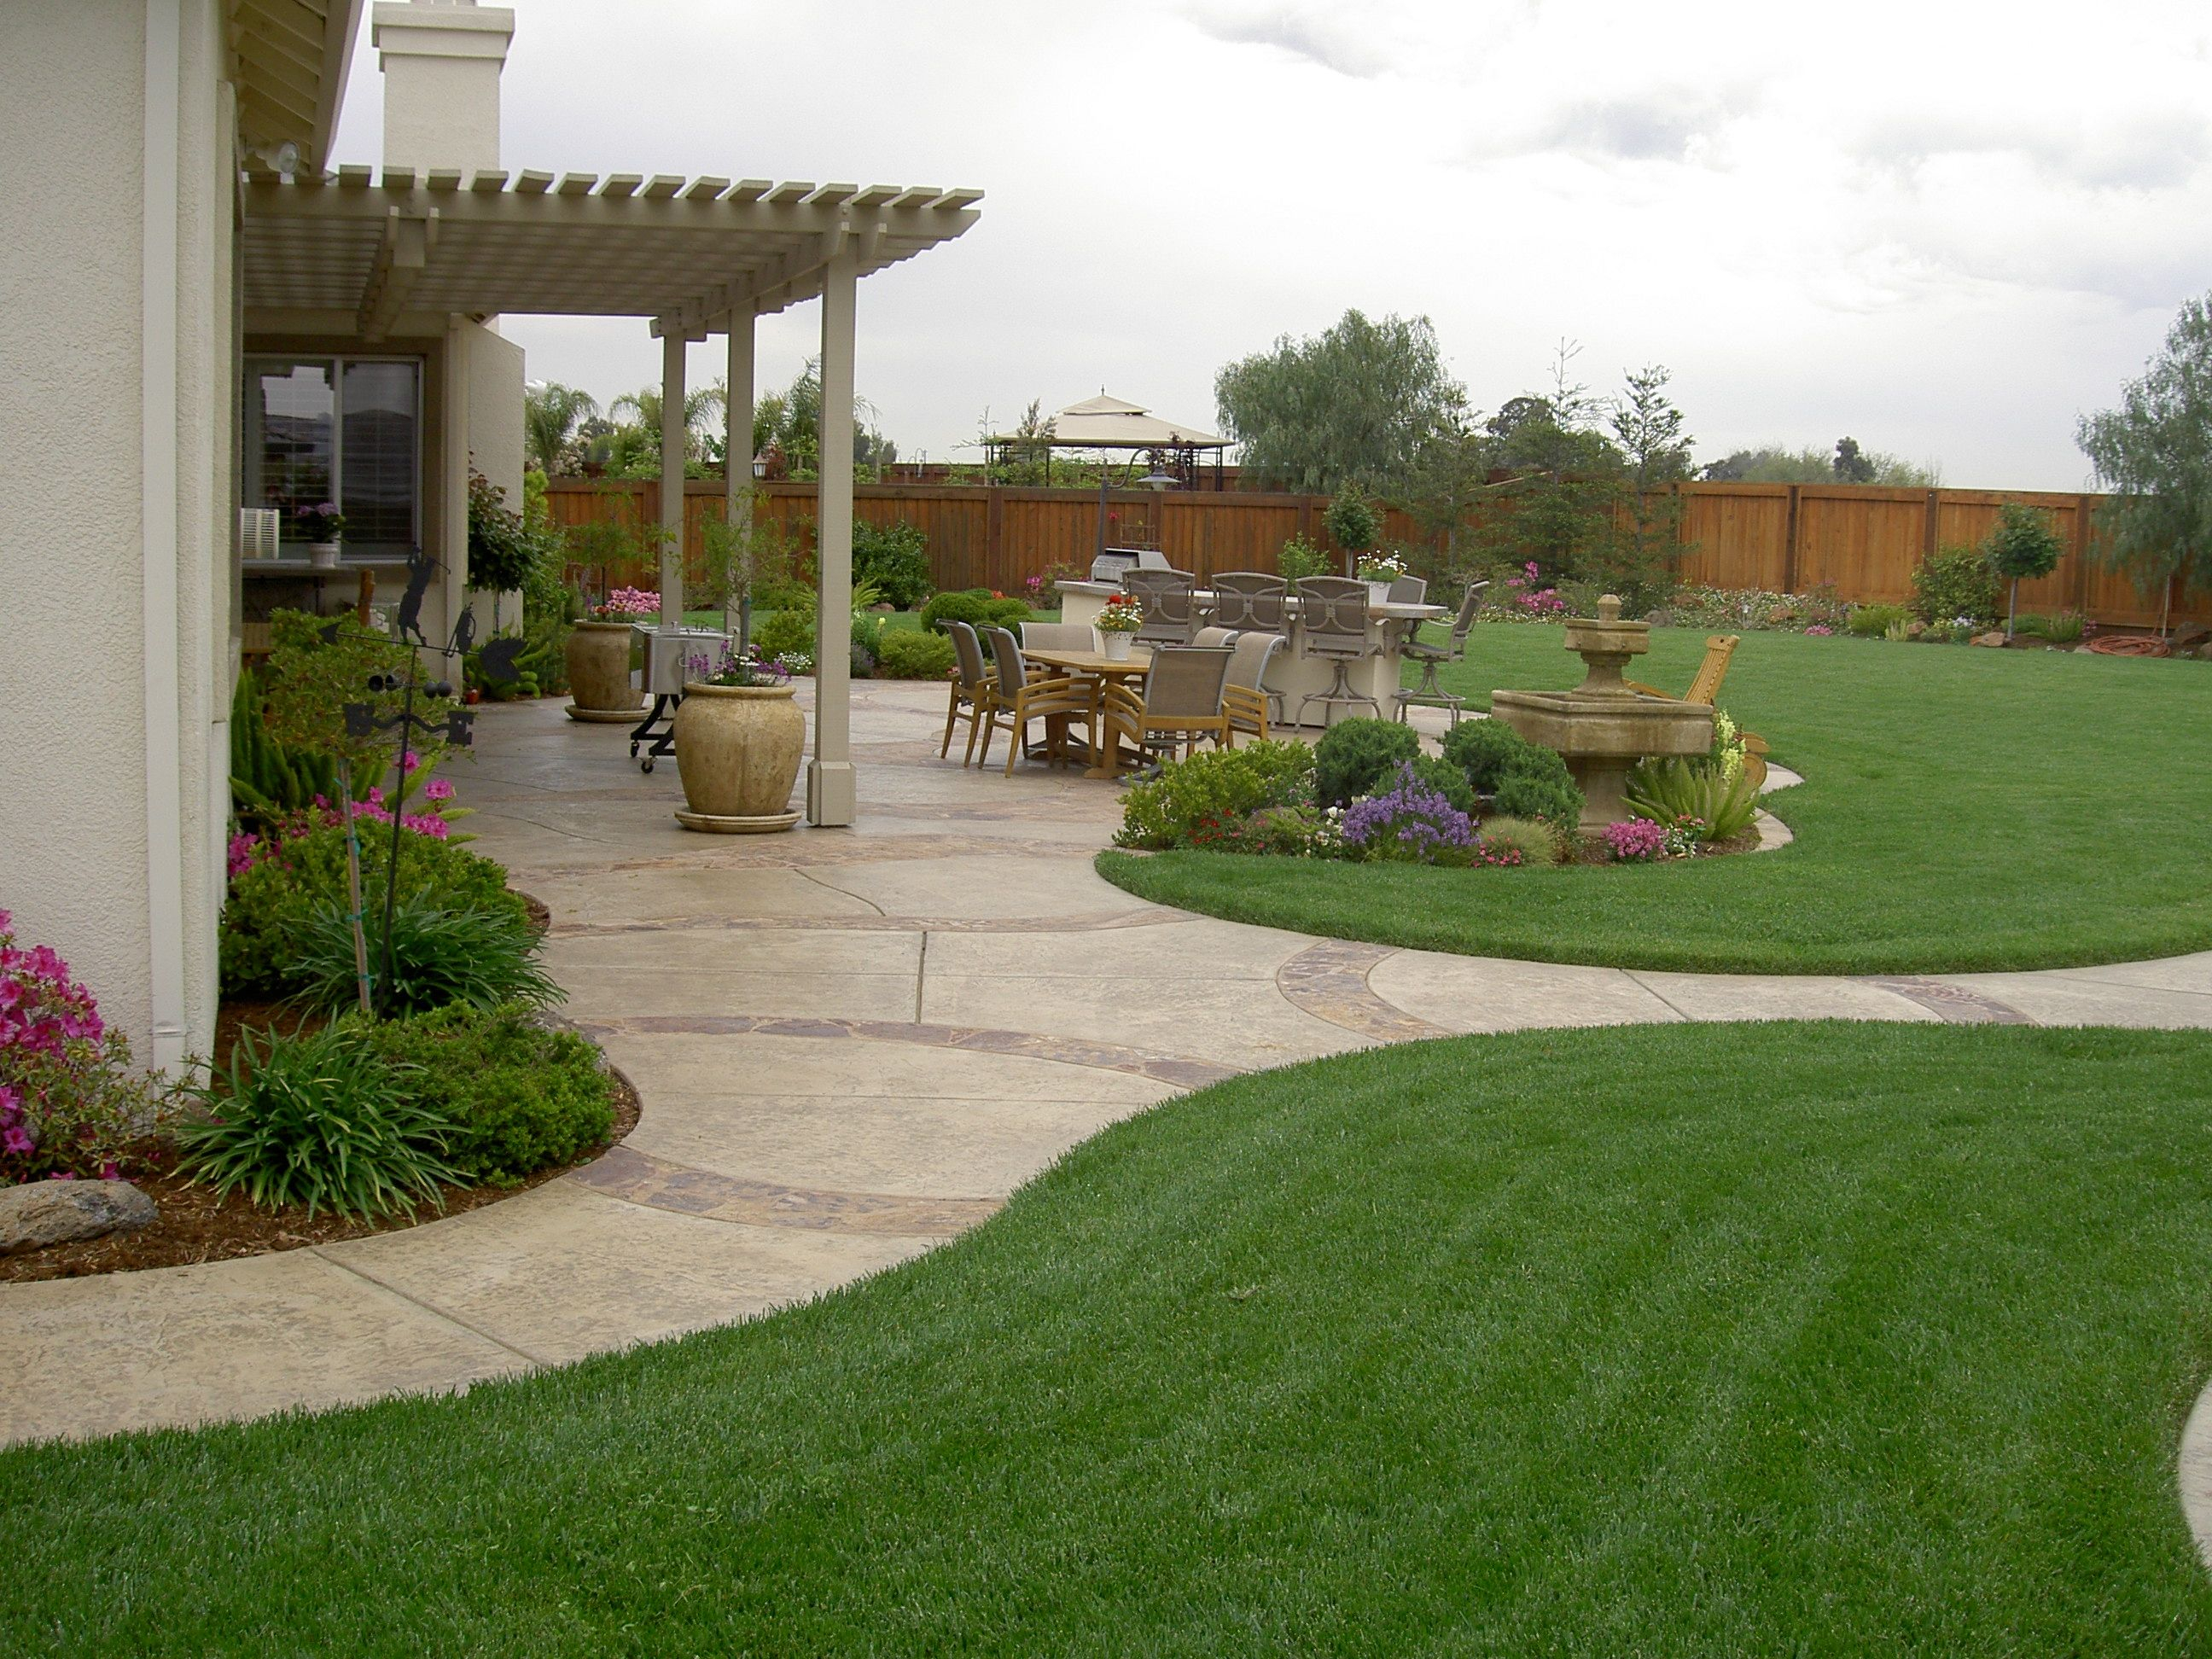 20 Awesome Landscaping Ideas For Your Backyard Gardens pertaining to 15 Genius Ideas How to Build Big Backyard Design Ideas